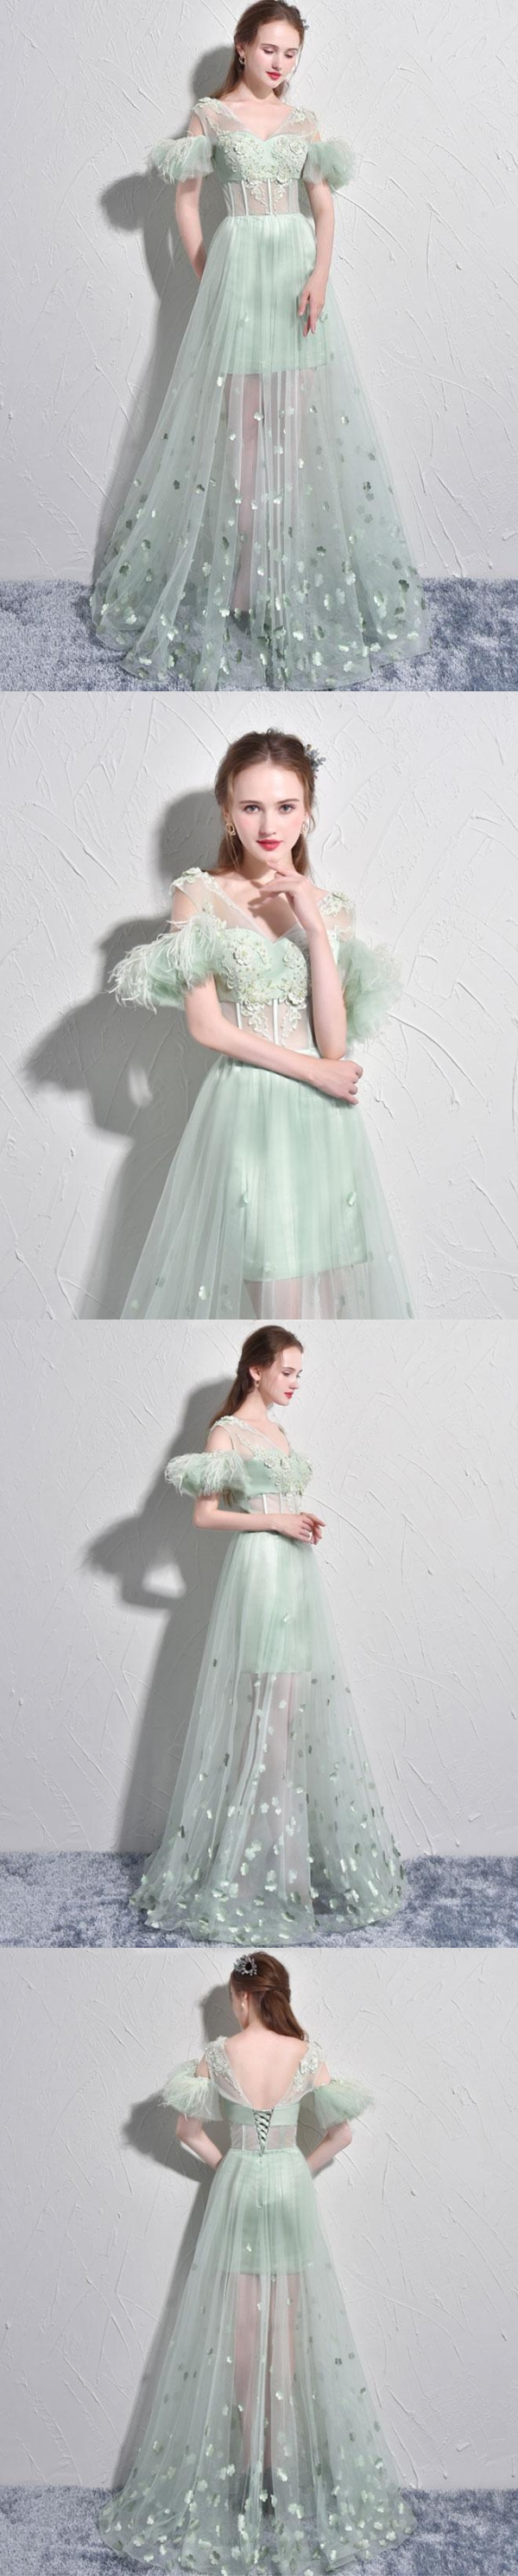 Sexy prom dresses aline short sleeve sage long prom dress tulle